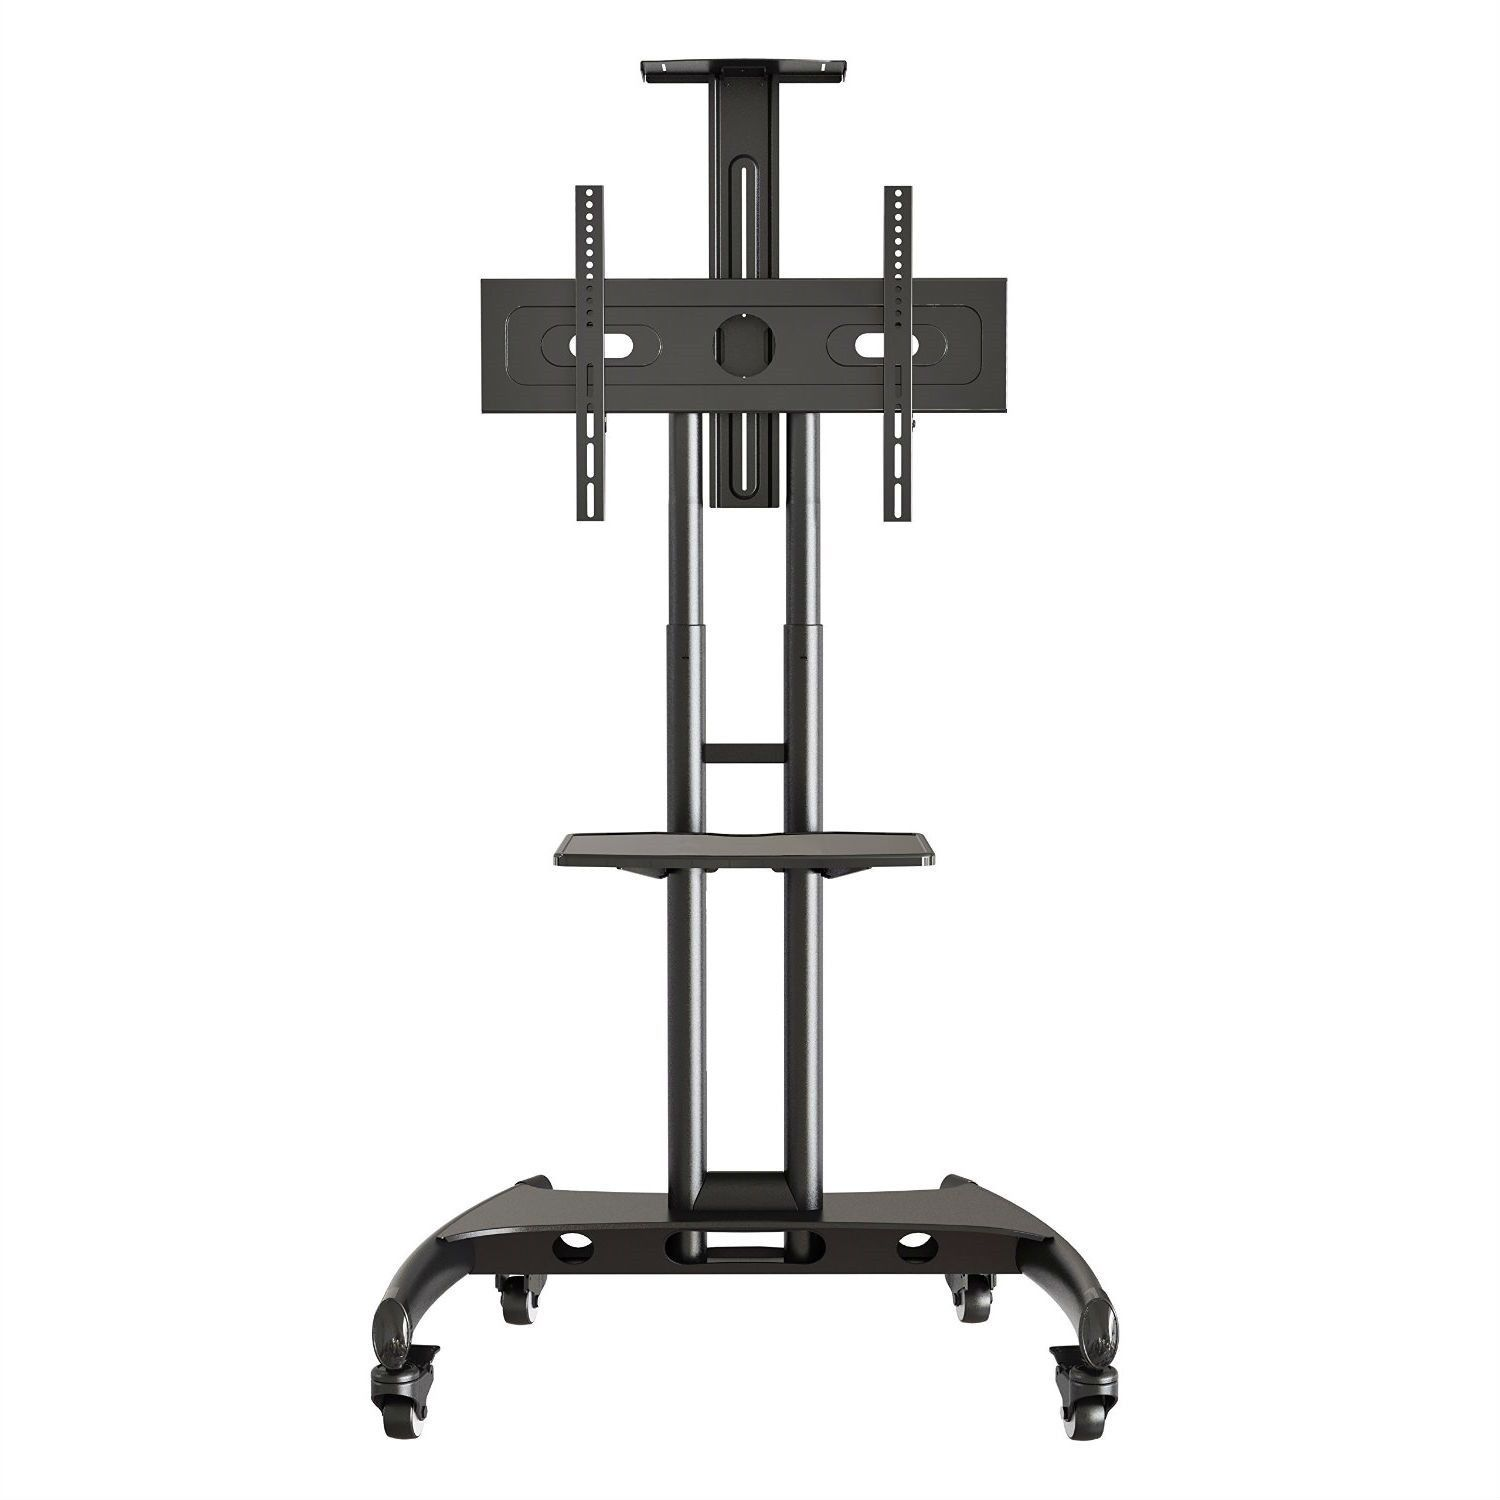 This Mobile TV Stand Adjustable Height TV Cart For Up To TV Is A Solid,  Durable, All Steel Constructed, Height Adjustable TV Cart With Universal TV  Mount ...